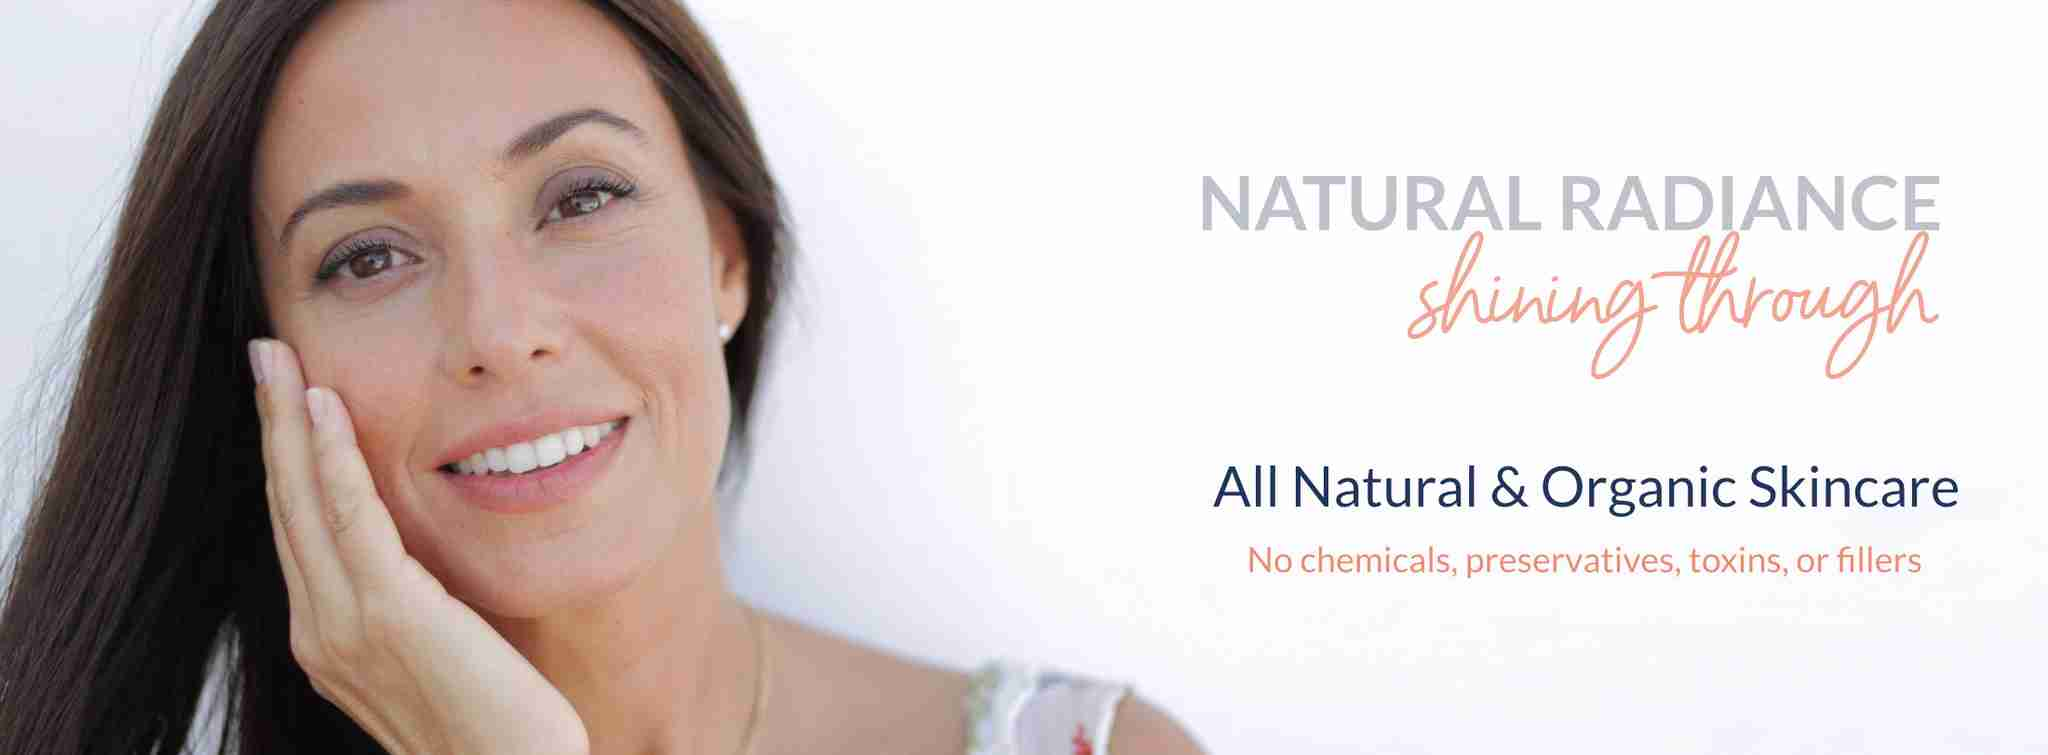 All-Natural and Organic Skincare